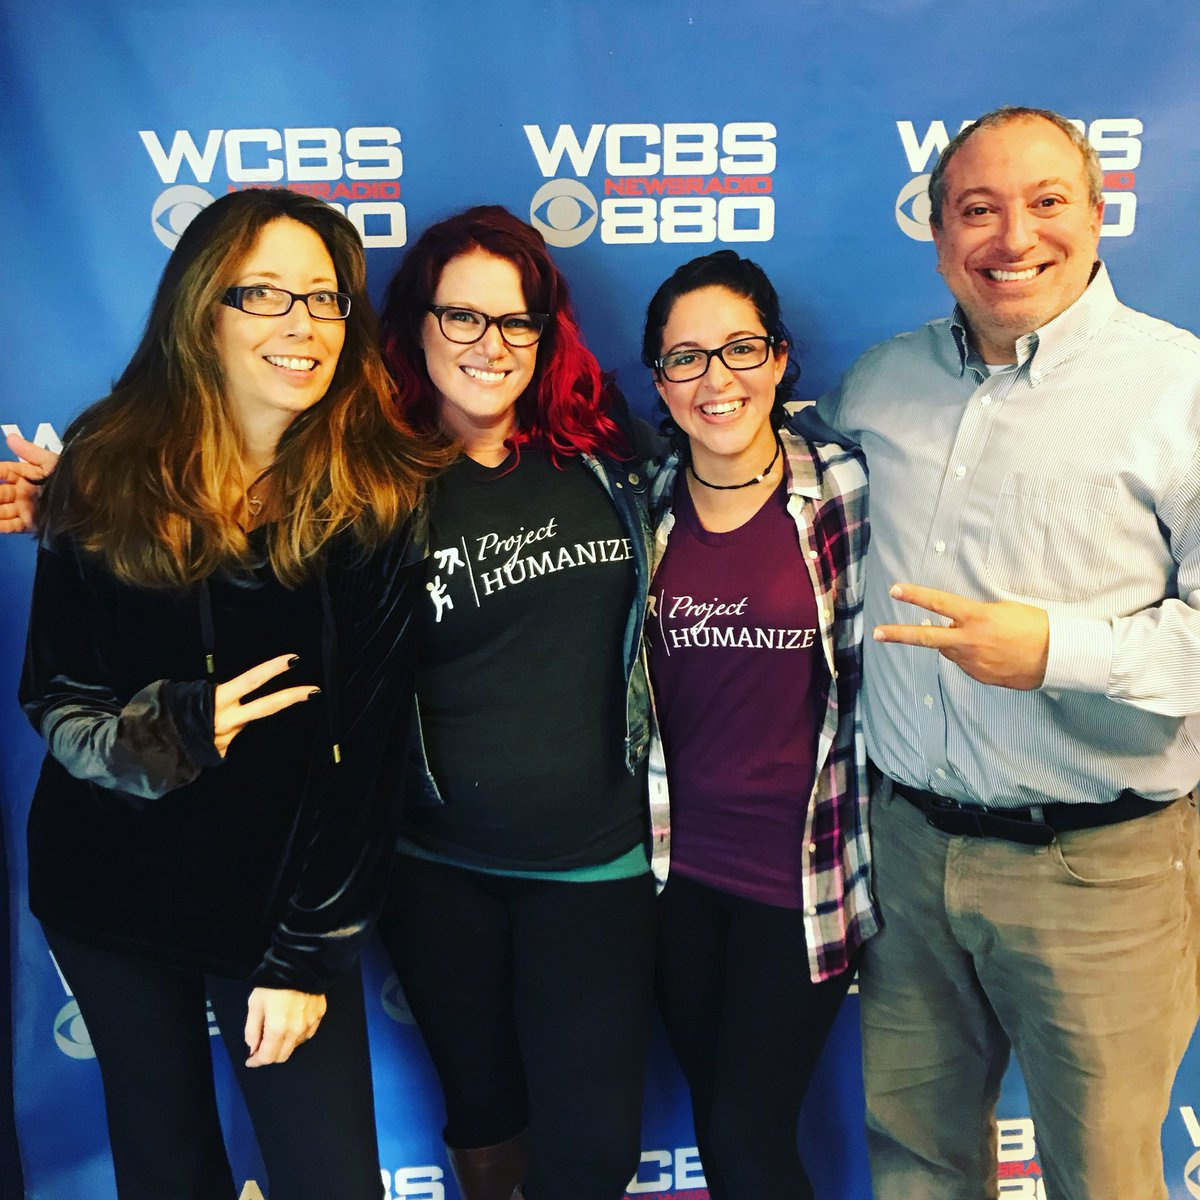 So THIS happened today. A huge thank you @deidrekopp &amp; @jaygassman for having us on air with. @gutwizdom. You guys rock! Tune in Saturday at 7 to WCBS 880AM to listen in!  #projecthumanize #gutwizdom #wcbs880 #cbsradio #homelessness #homeless #nyc #newyorkcity #radio #nonprofit <br>http://pic.twitter.com/Rh11fccpFK